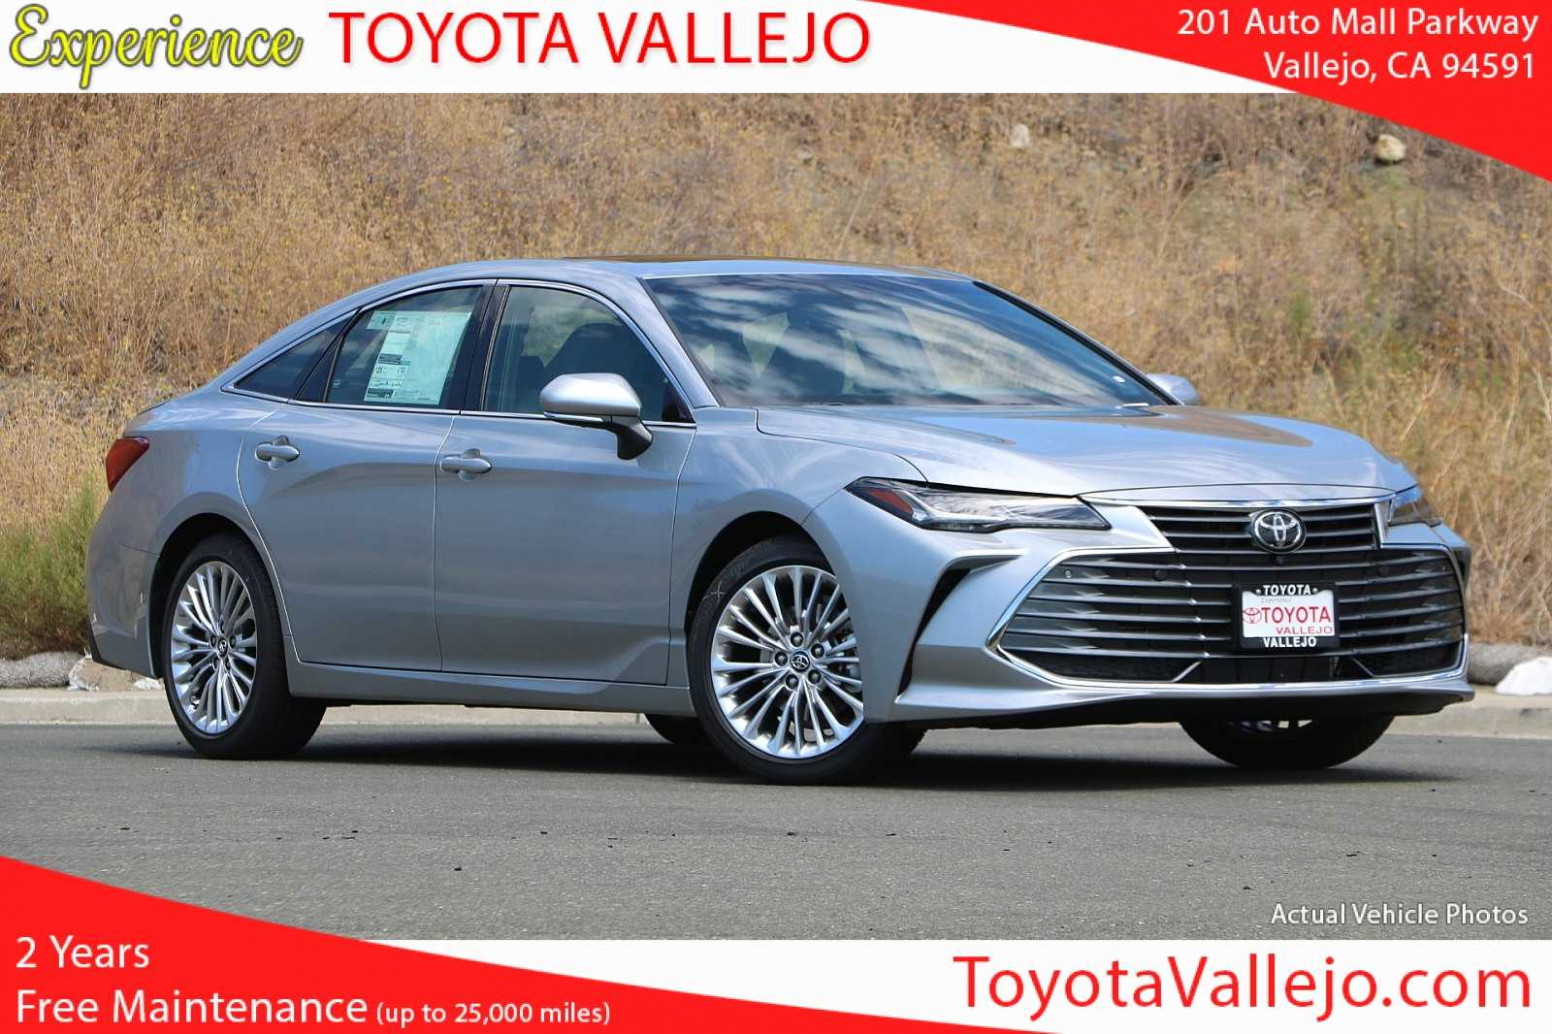 New 8 Toyota Avalon Limited Front Wheel Drive Sedan | 2020 Toyota Avalon Xle Premium